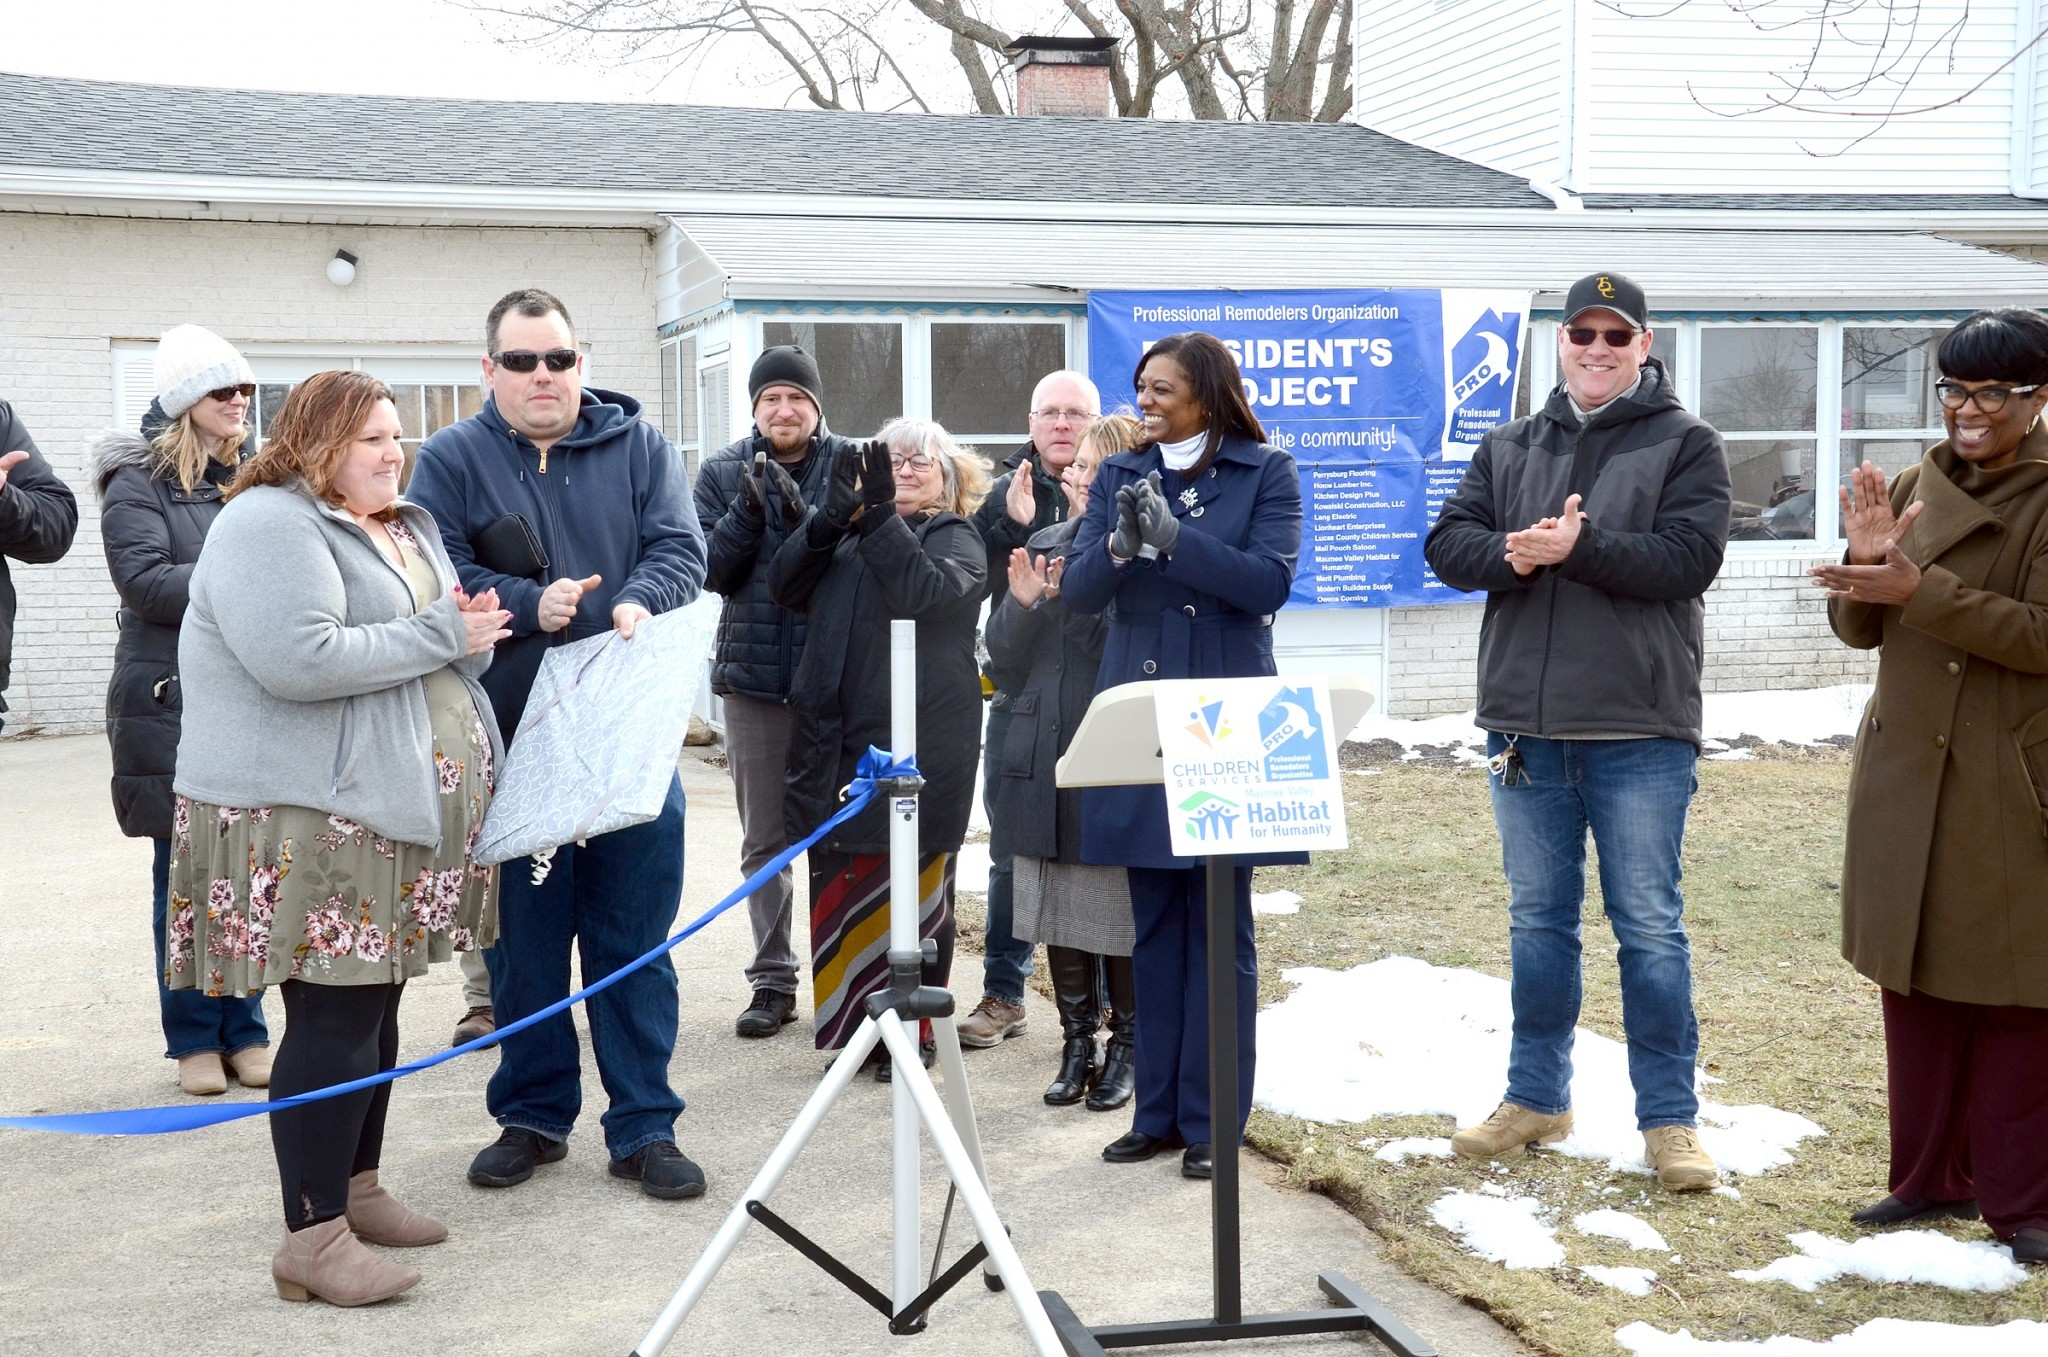 It was applause all around at the ribbon-cutting of a 300-square-foot addition to the Jerusalem Township home of Malori and Chad McCloskeys, who are Lucas County Children Services foster parents. The project, a donation-driven, volunteer effort coordinated by Professional Remodelers Organization (PRO) and Habitat for Humanity, will help the McCloskeys foster more children, in particular, sibling groups. (Press photo by Ken Grosjean)